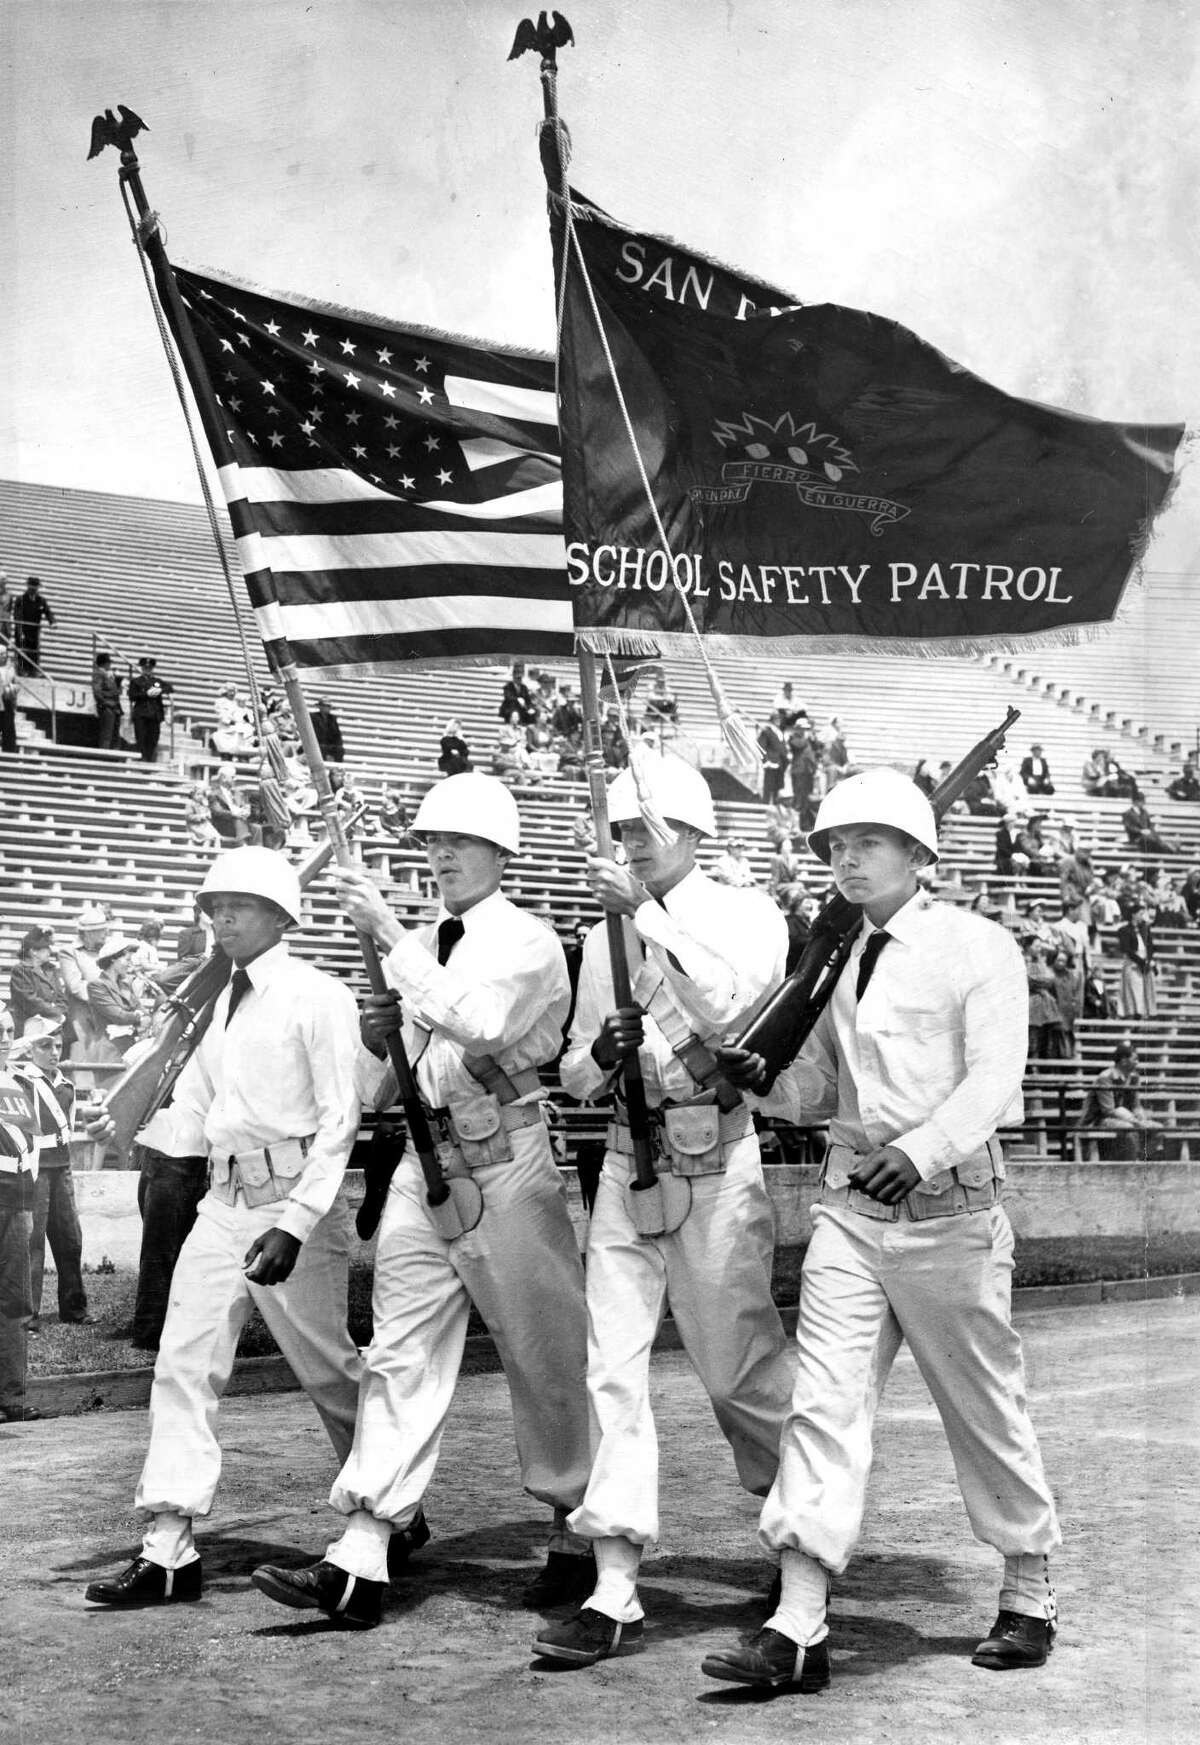 The color guard in Everett Middle School's safety patrol parade in May 1960: Ernie Escort (left), Larry Greer, Don Daniels and Don Arrighi.